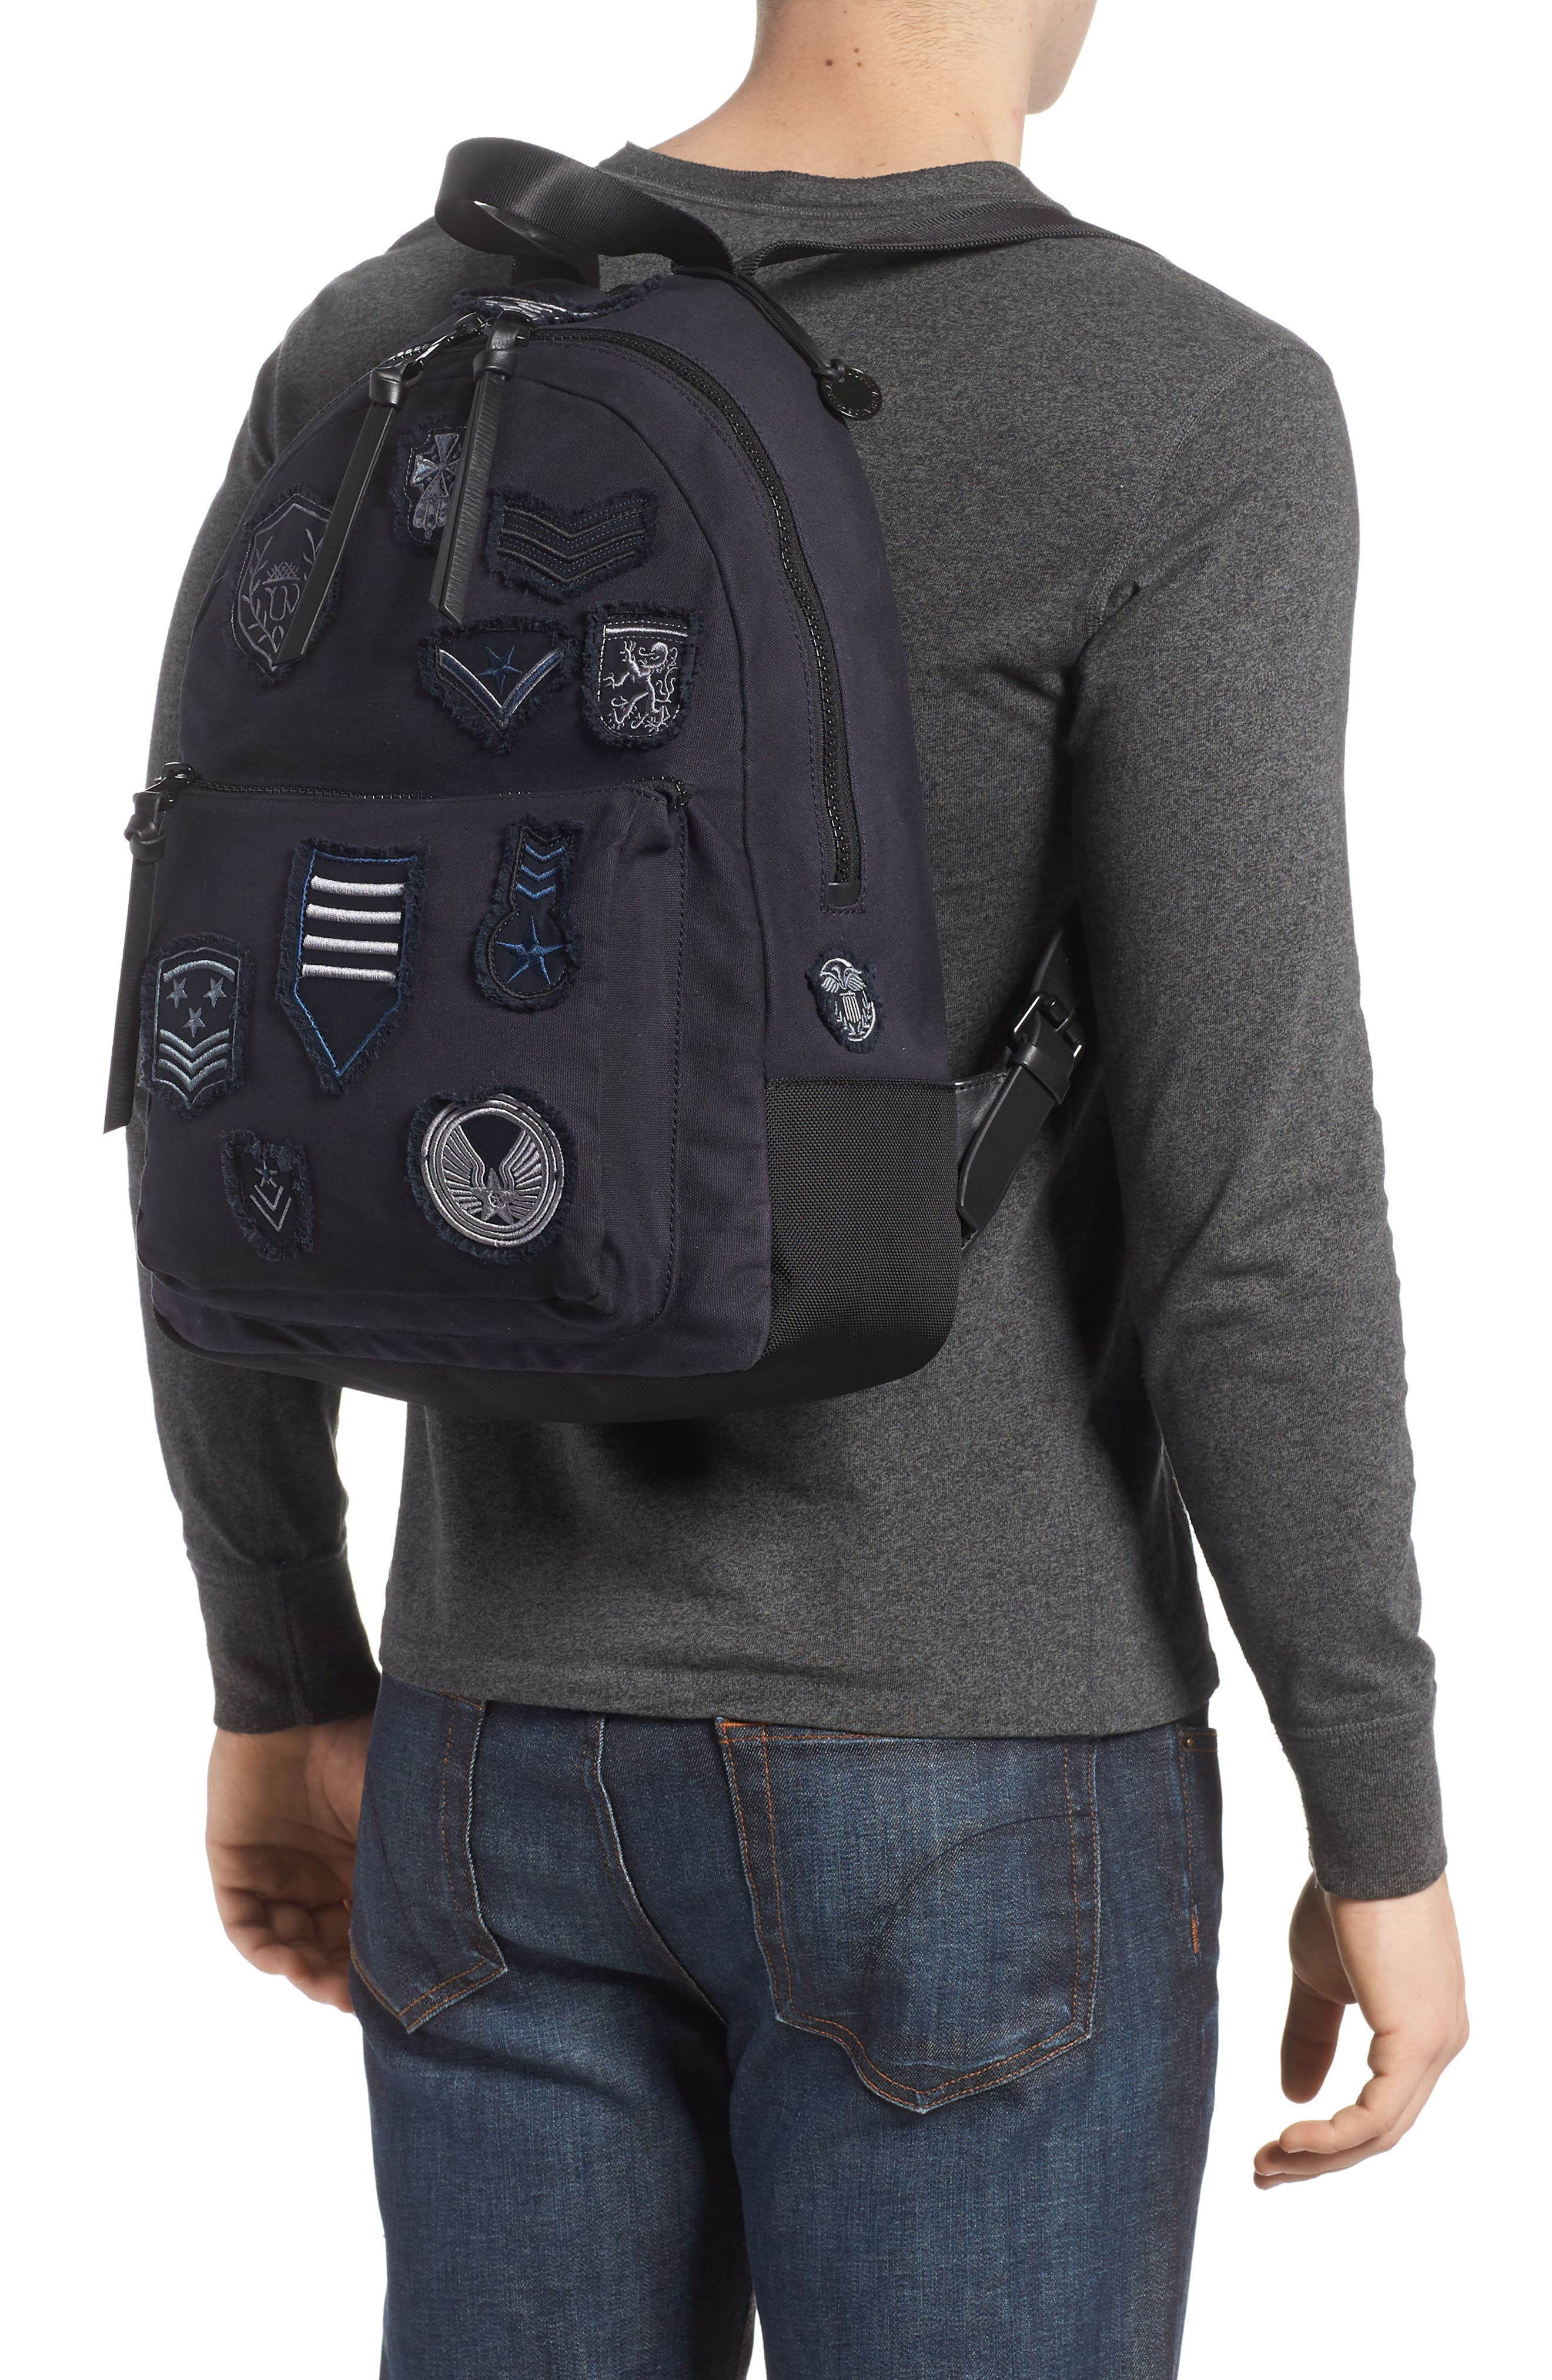 Gibson Patch Backpack,                             Alternate thumbnail 2, color,